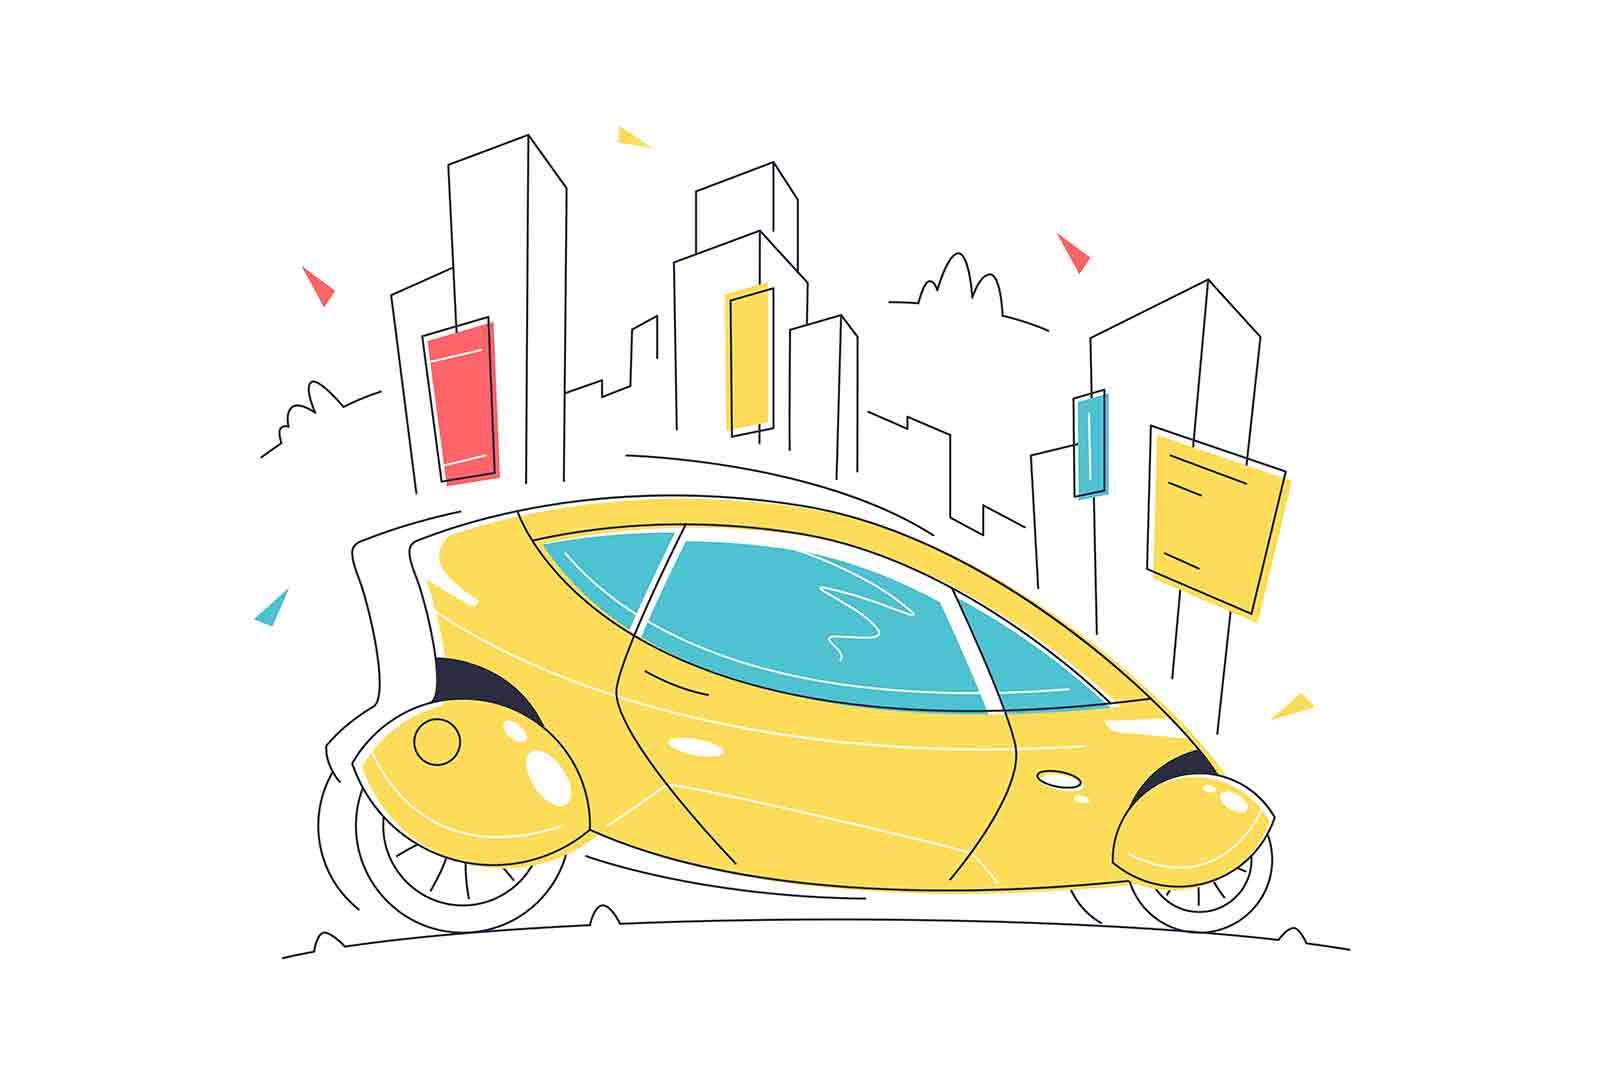 Futuristic self driving smart car vector illustration. Driverless vehicle linear. Transport of future, intelligent control system concept